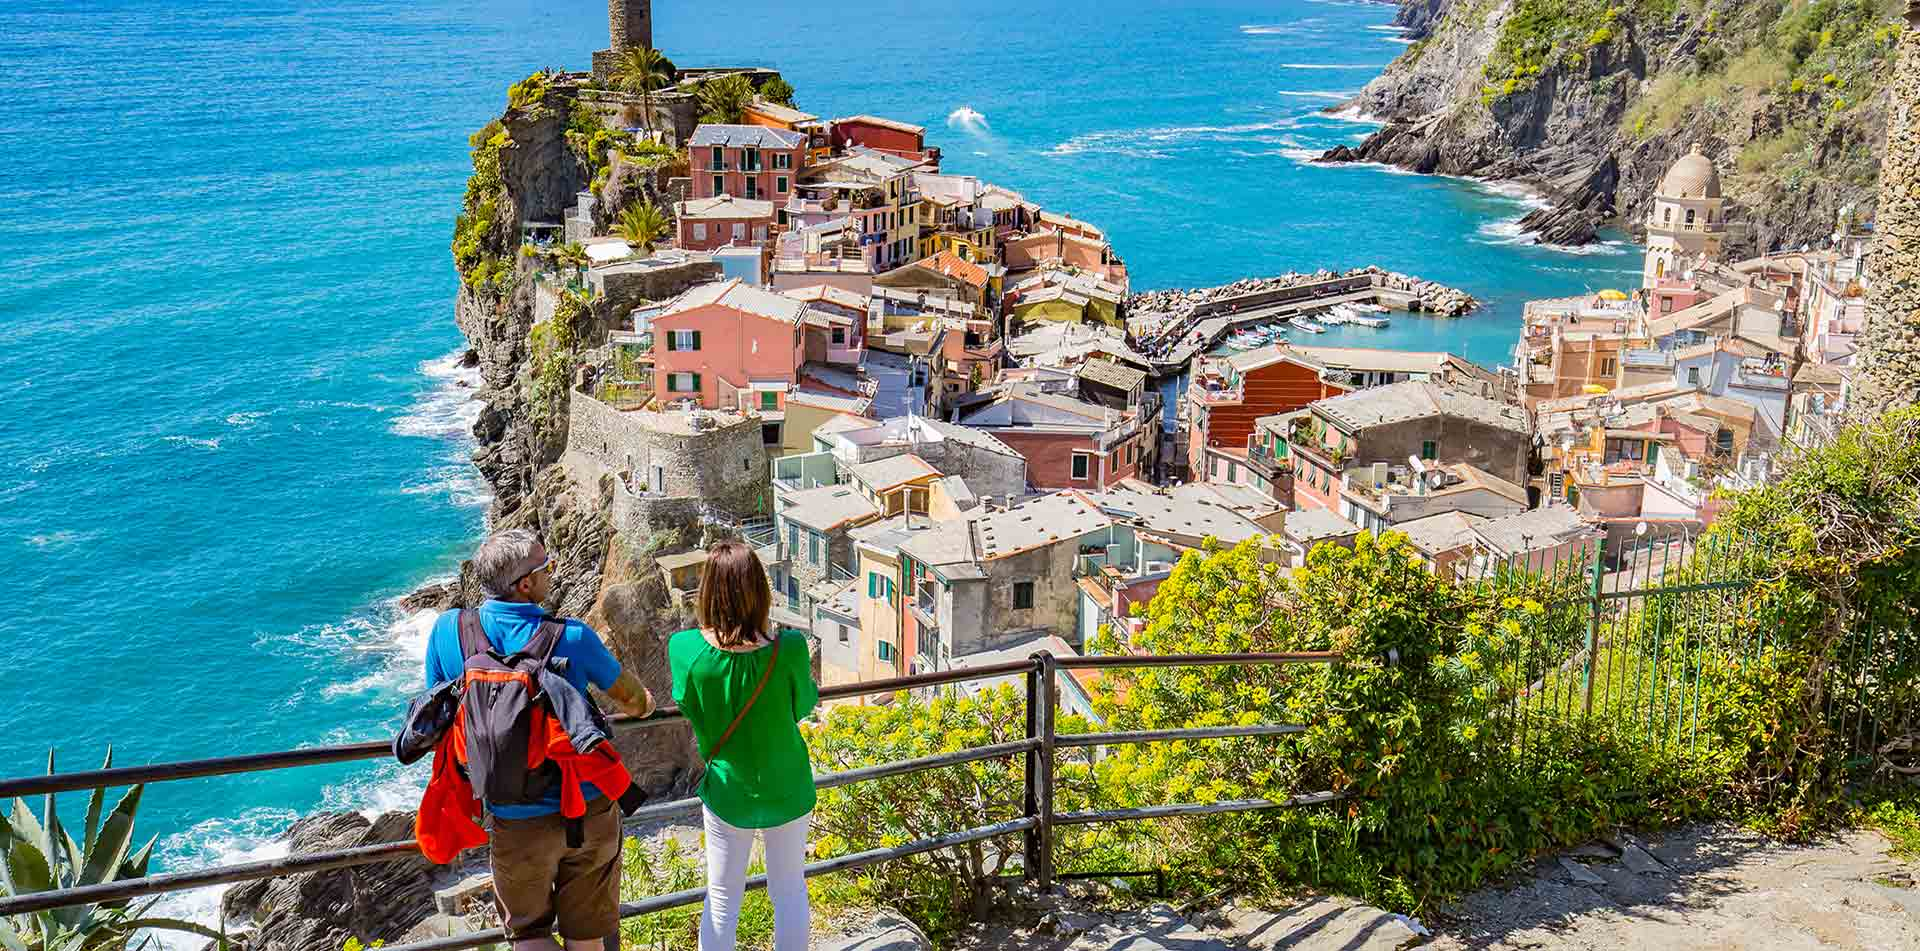 Guests Overlooking the Cinque Terre